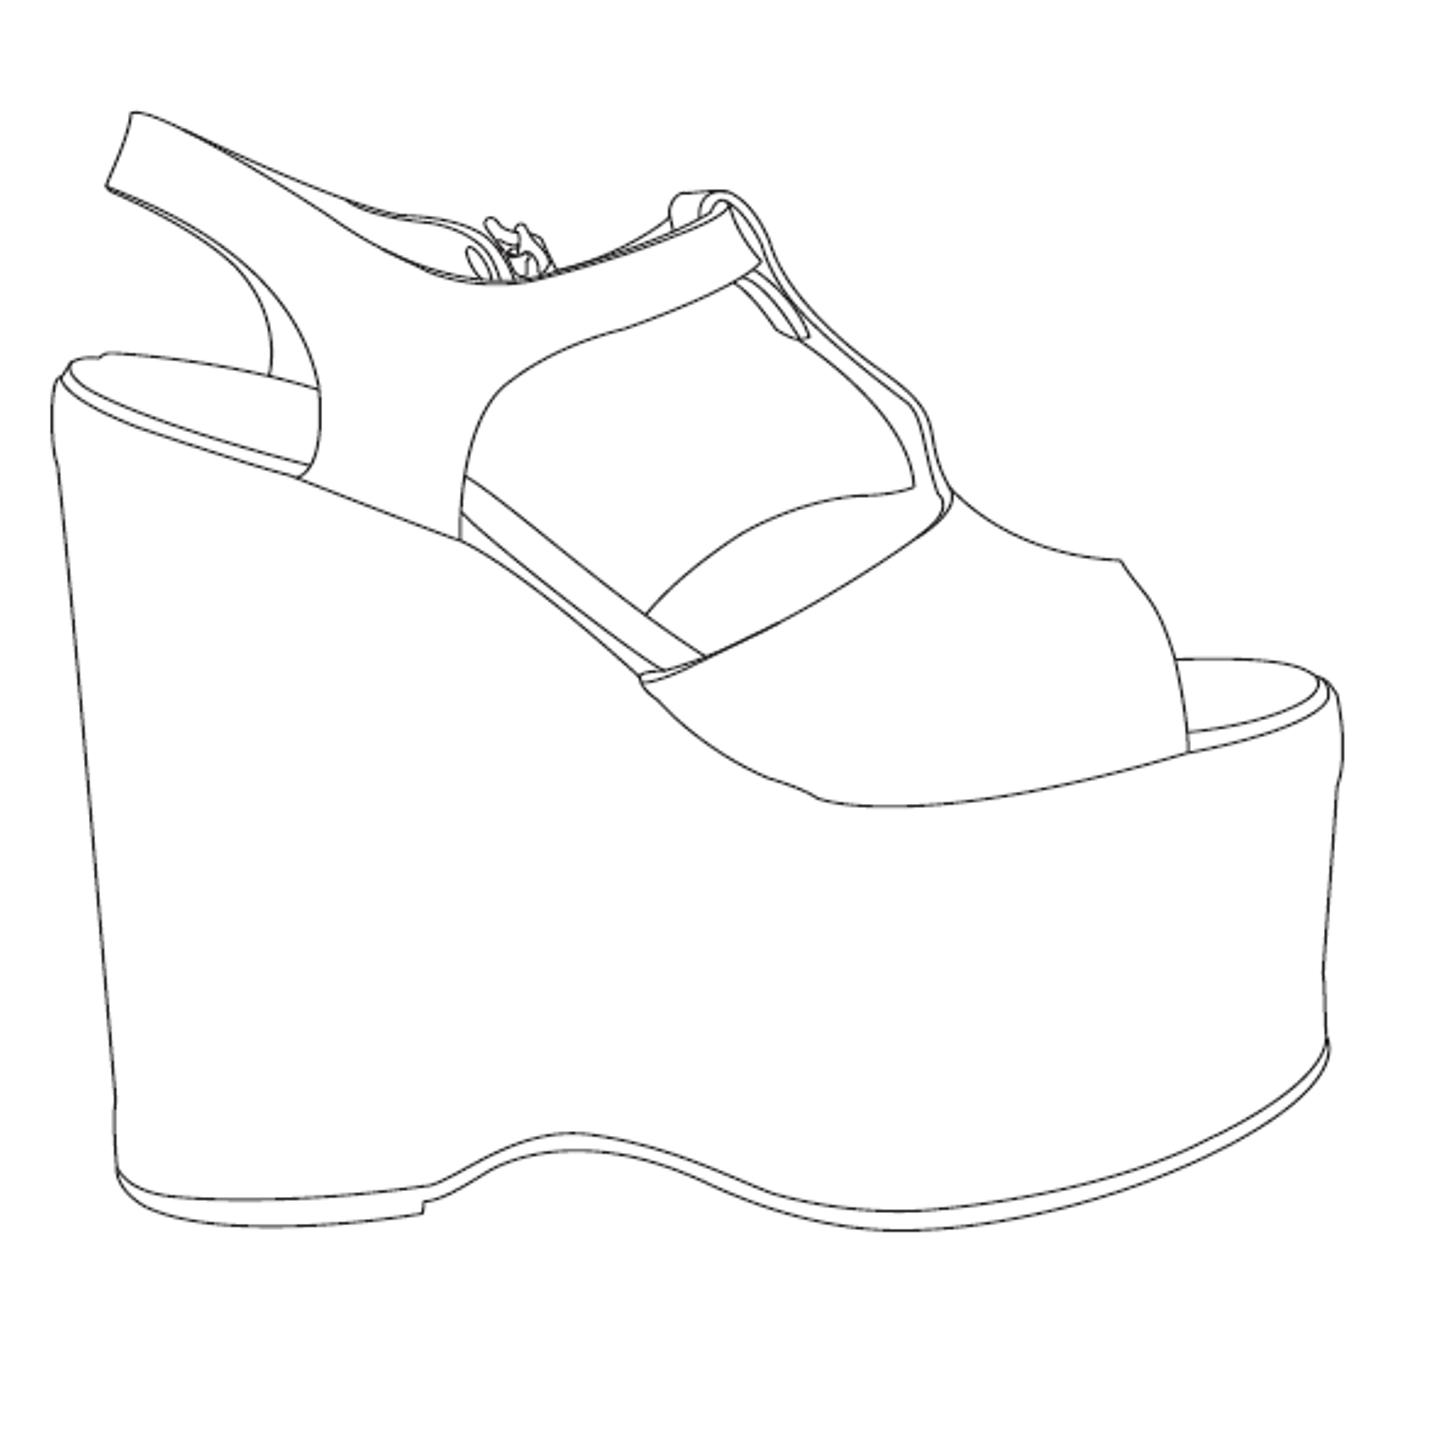 Roshe Drawing At Getdrawings Free For Personal Use Roshe